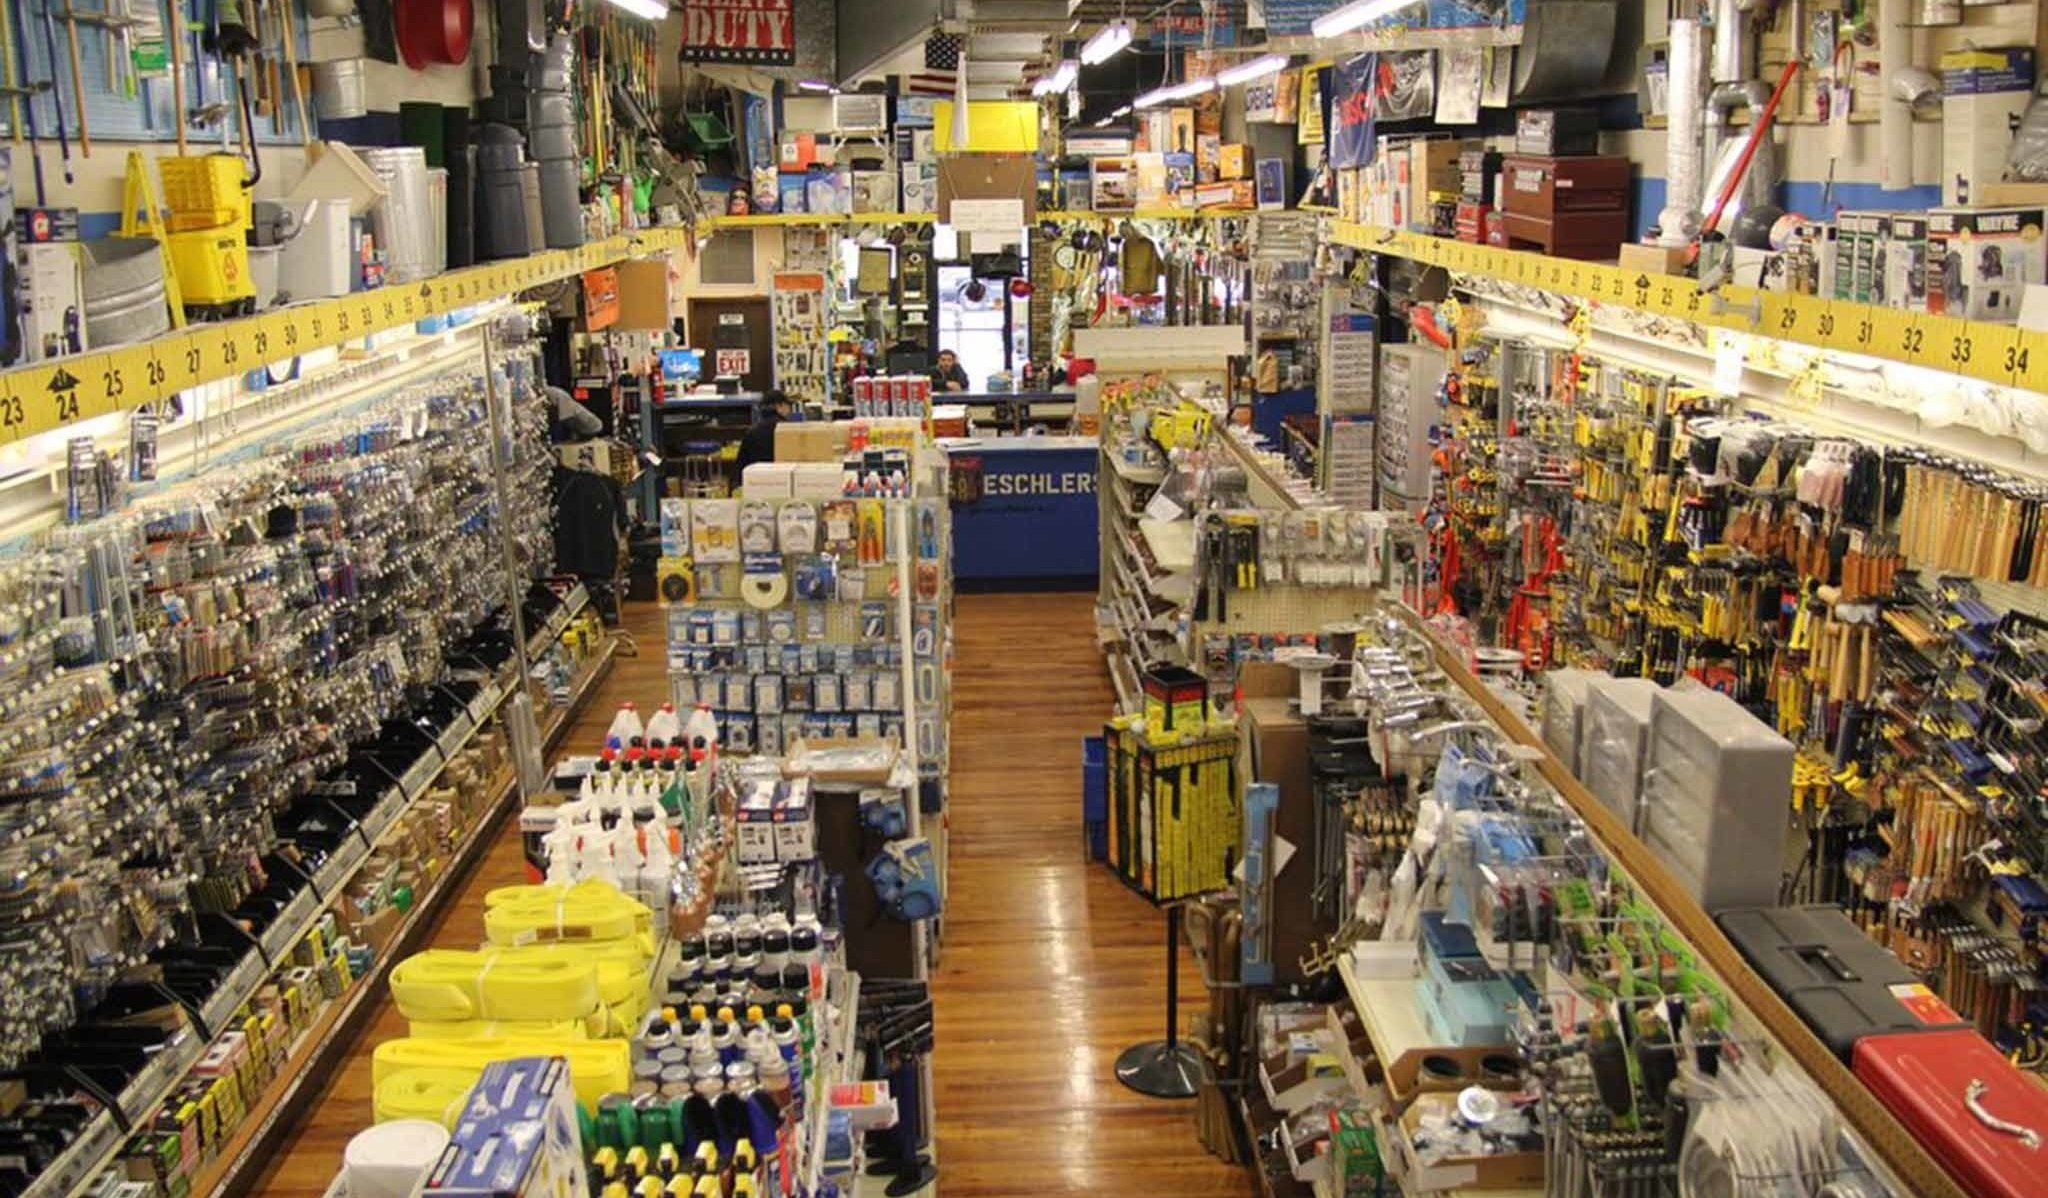 SOLD! Hardware, Building & Produce Supplies Business for Sale Inner West Syd